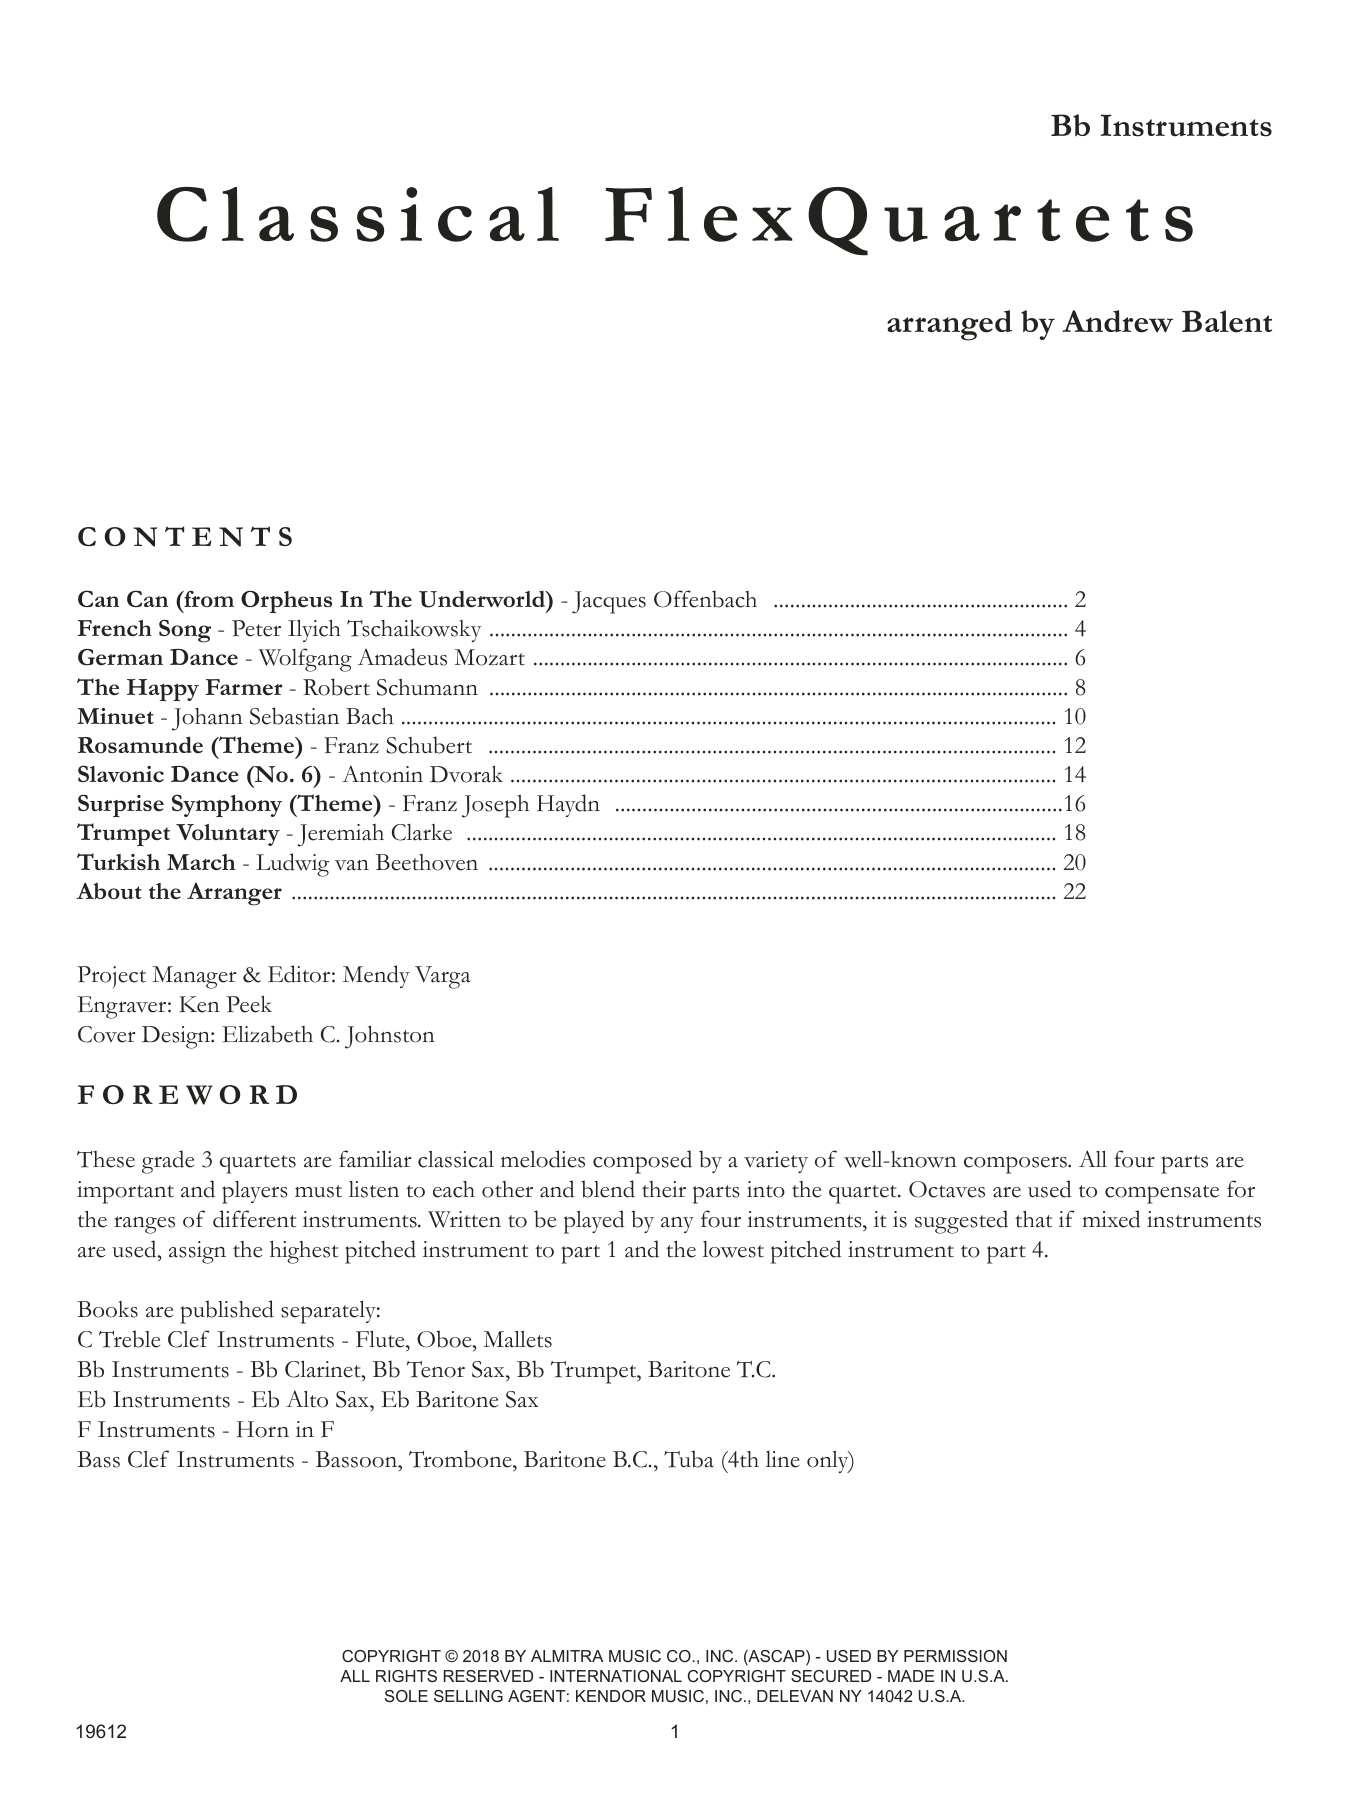 Classical Flexquartets - Bb Instruments Sheet Music